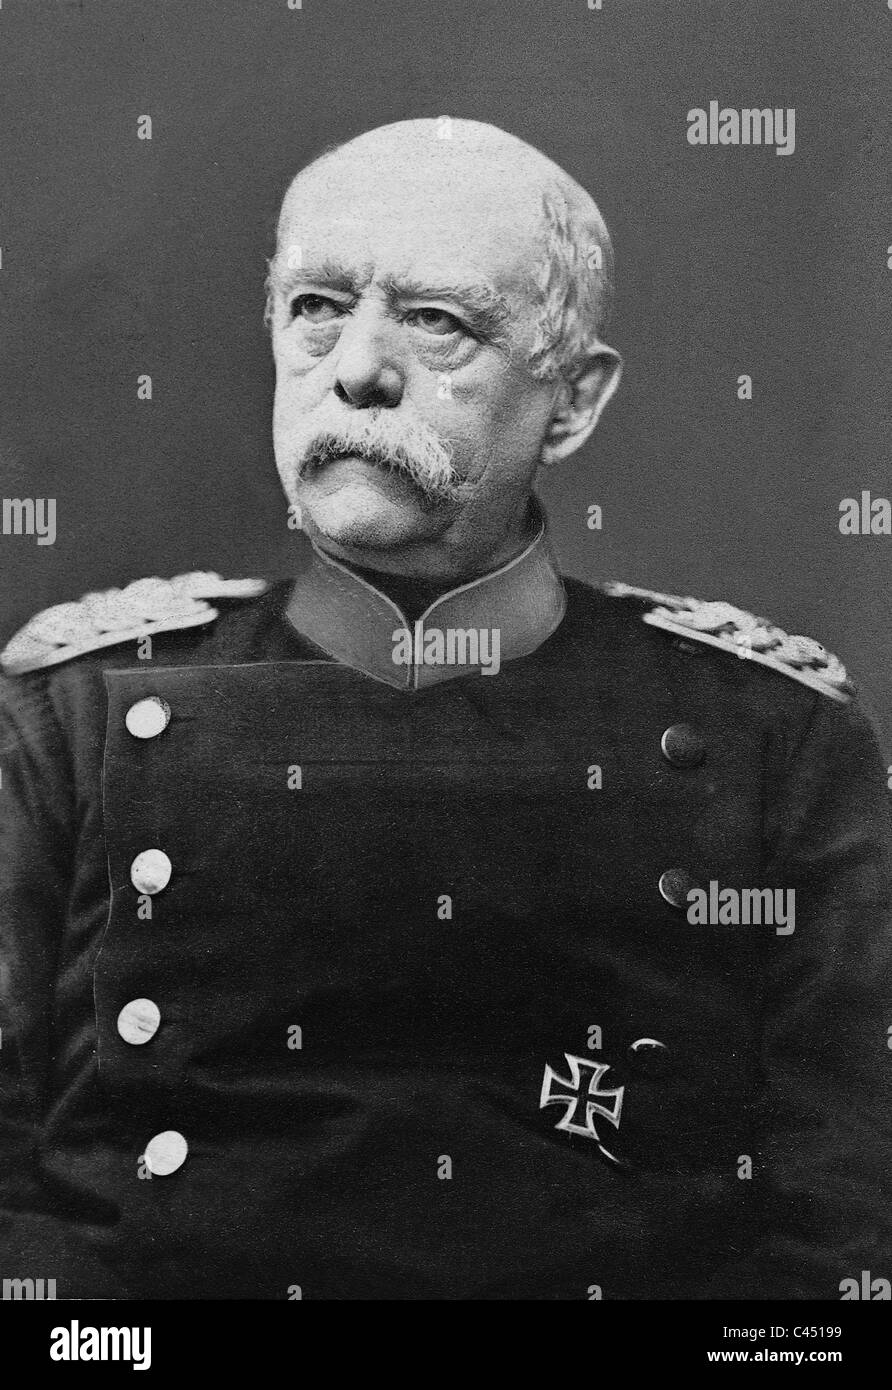 otto von bismarck ruthless dictator or the genius of german unification The achievement of otto von bismarck was the unification of germany from above, without really undermining royal power bismarck, the political genius of the mid-19th century, preserved much of frederick the great's absolutism and bequeathed it to the 20th century.